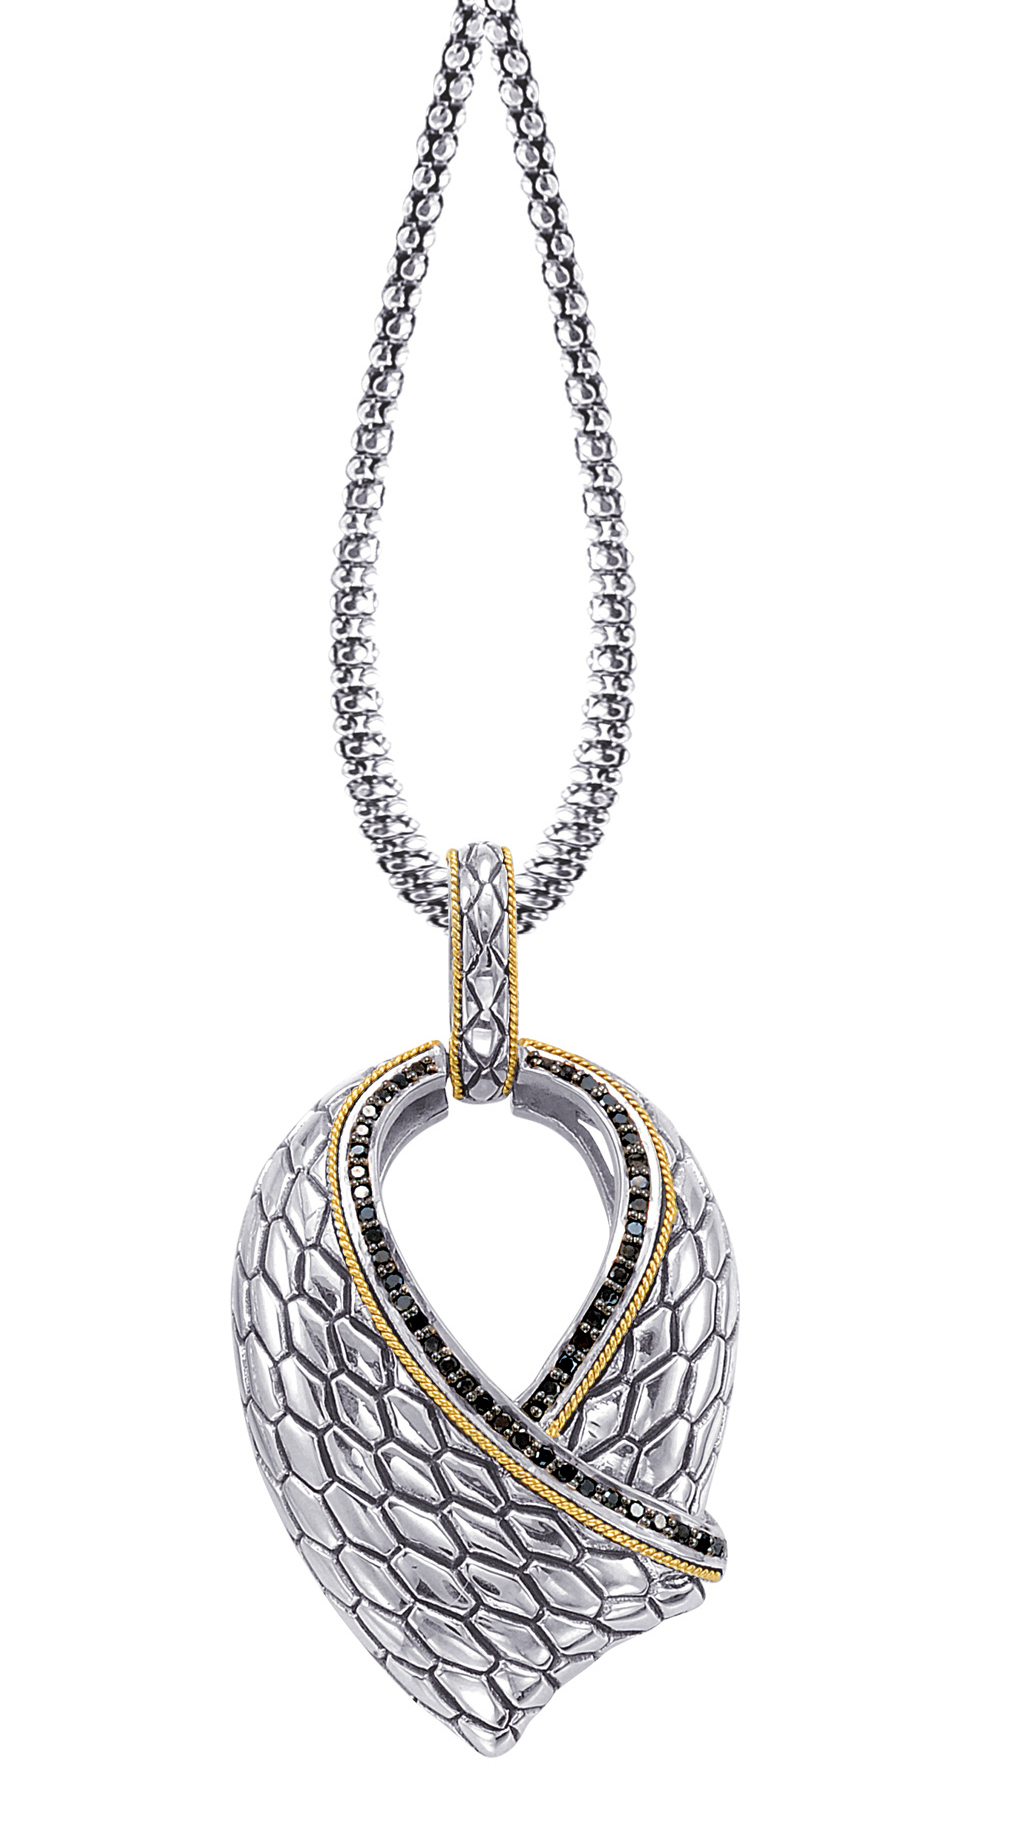 Alesandro Menegati 18K Accented Sterling Silver Necklace with Black Diamonds. Price: $563.20